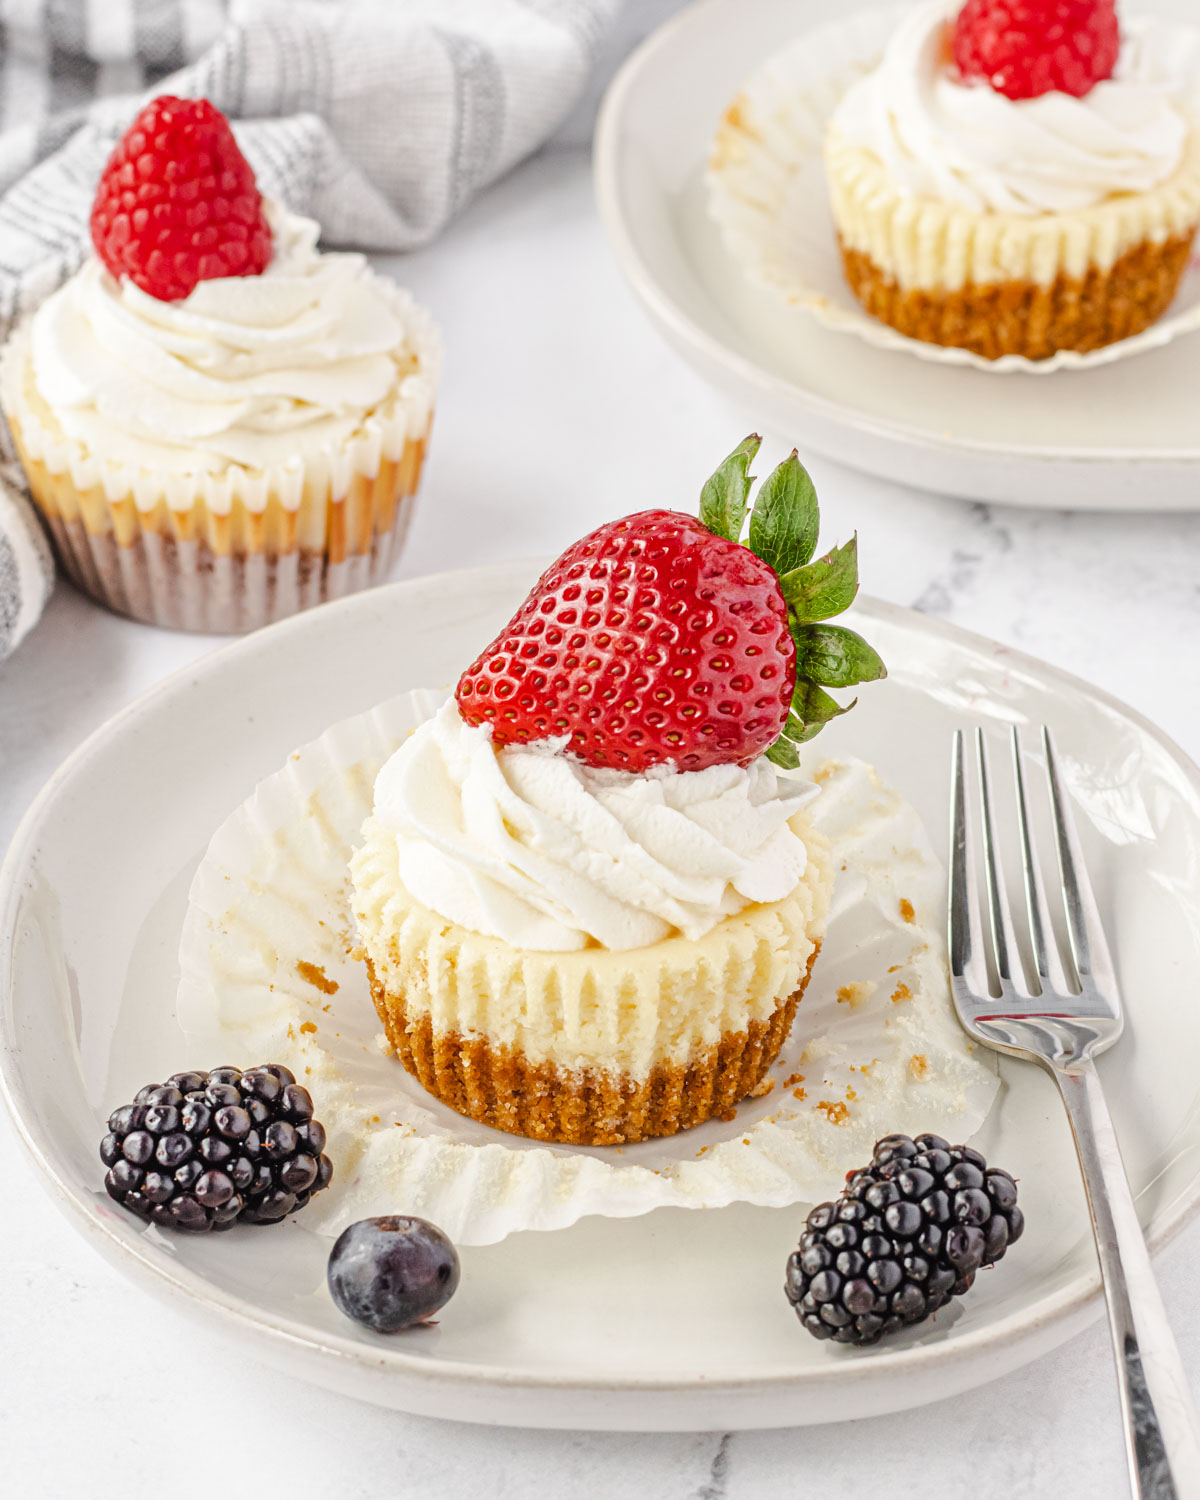 Mini new york cheesecake on a plate with berries and a fork, and two more cheesecakes in background.